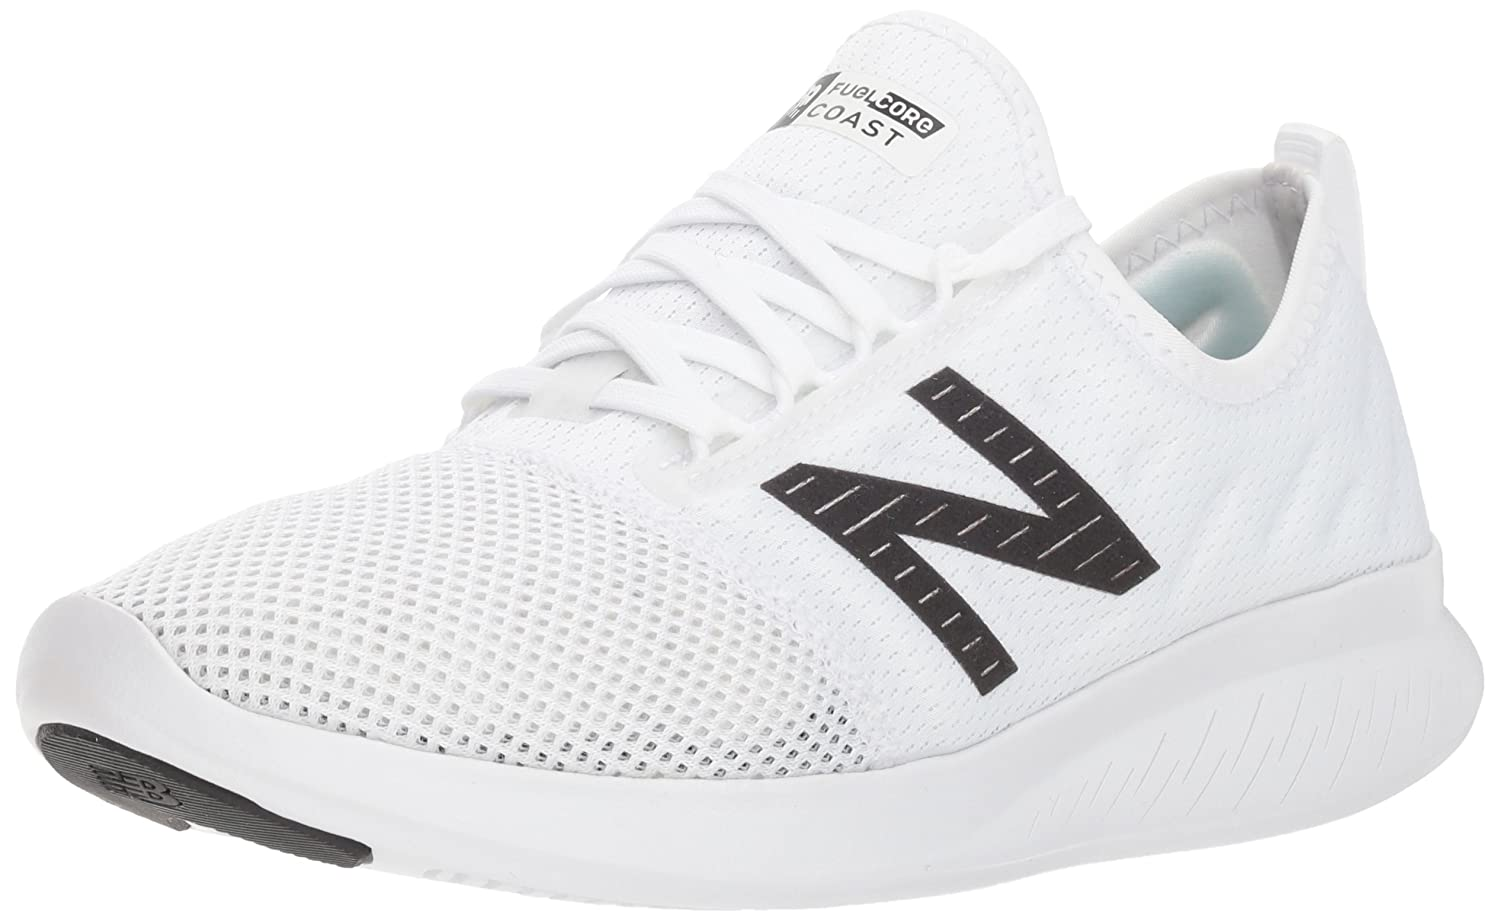 New Balance Women's Coast V4 FuelCore Running Shoe B075R7DHKG 5 D US|White/Black